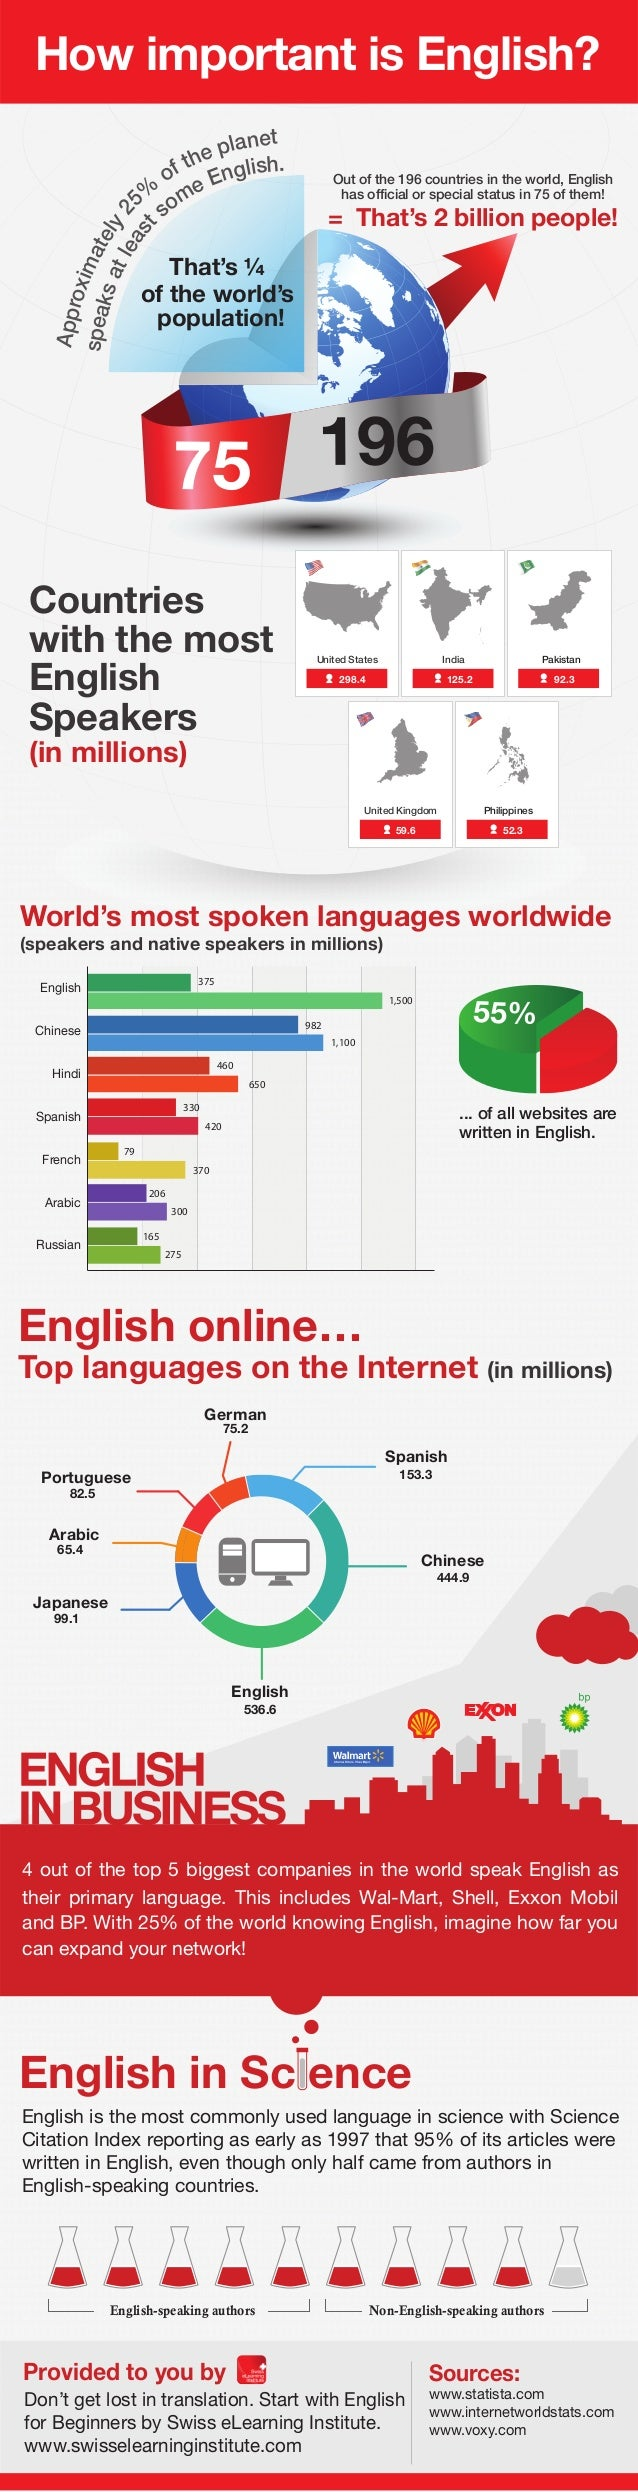 How Himowp imoprotratanntt iiss E Engnlisghl?ish?  75 196  Countries  with the most  English  Speakers  (in millions)  Out...